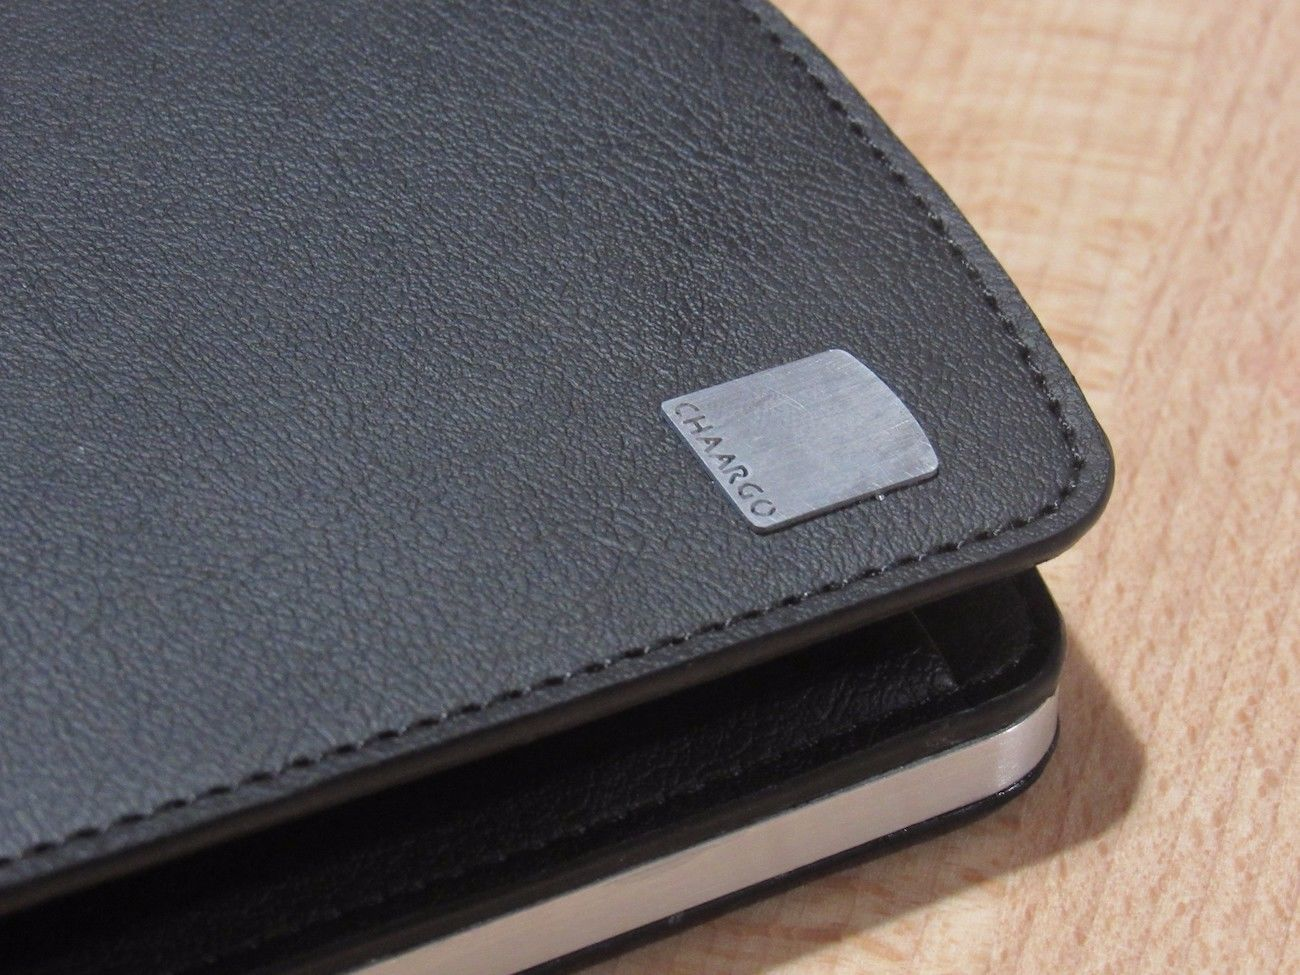 CHAARGO Wireless Charging Wallet